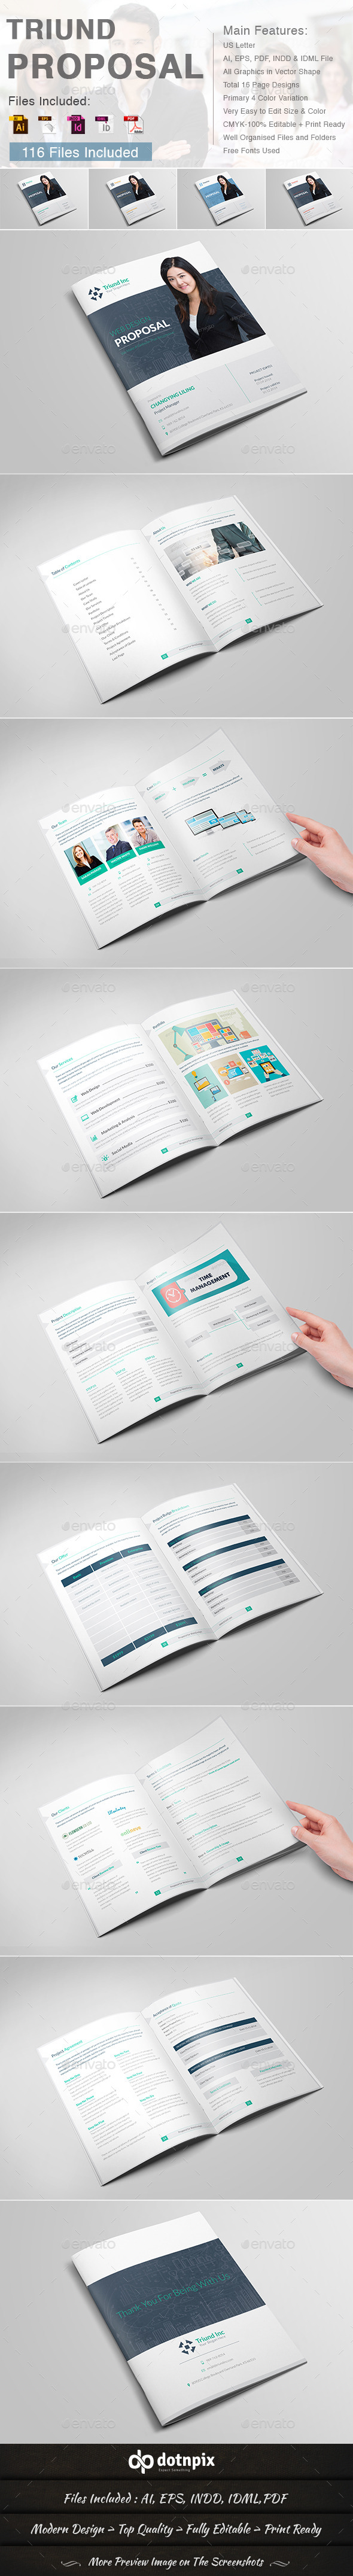 GraphicRiver Triund Proposal 9713121